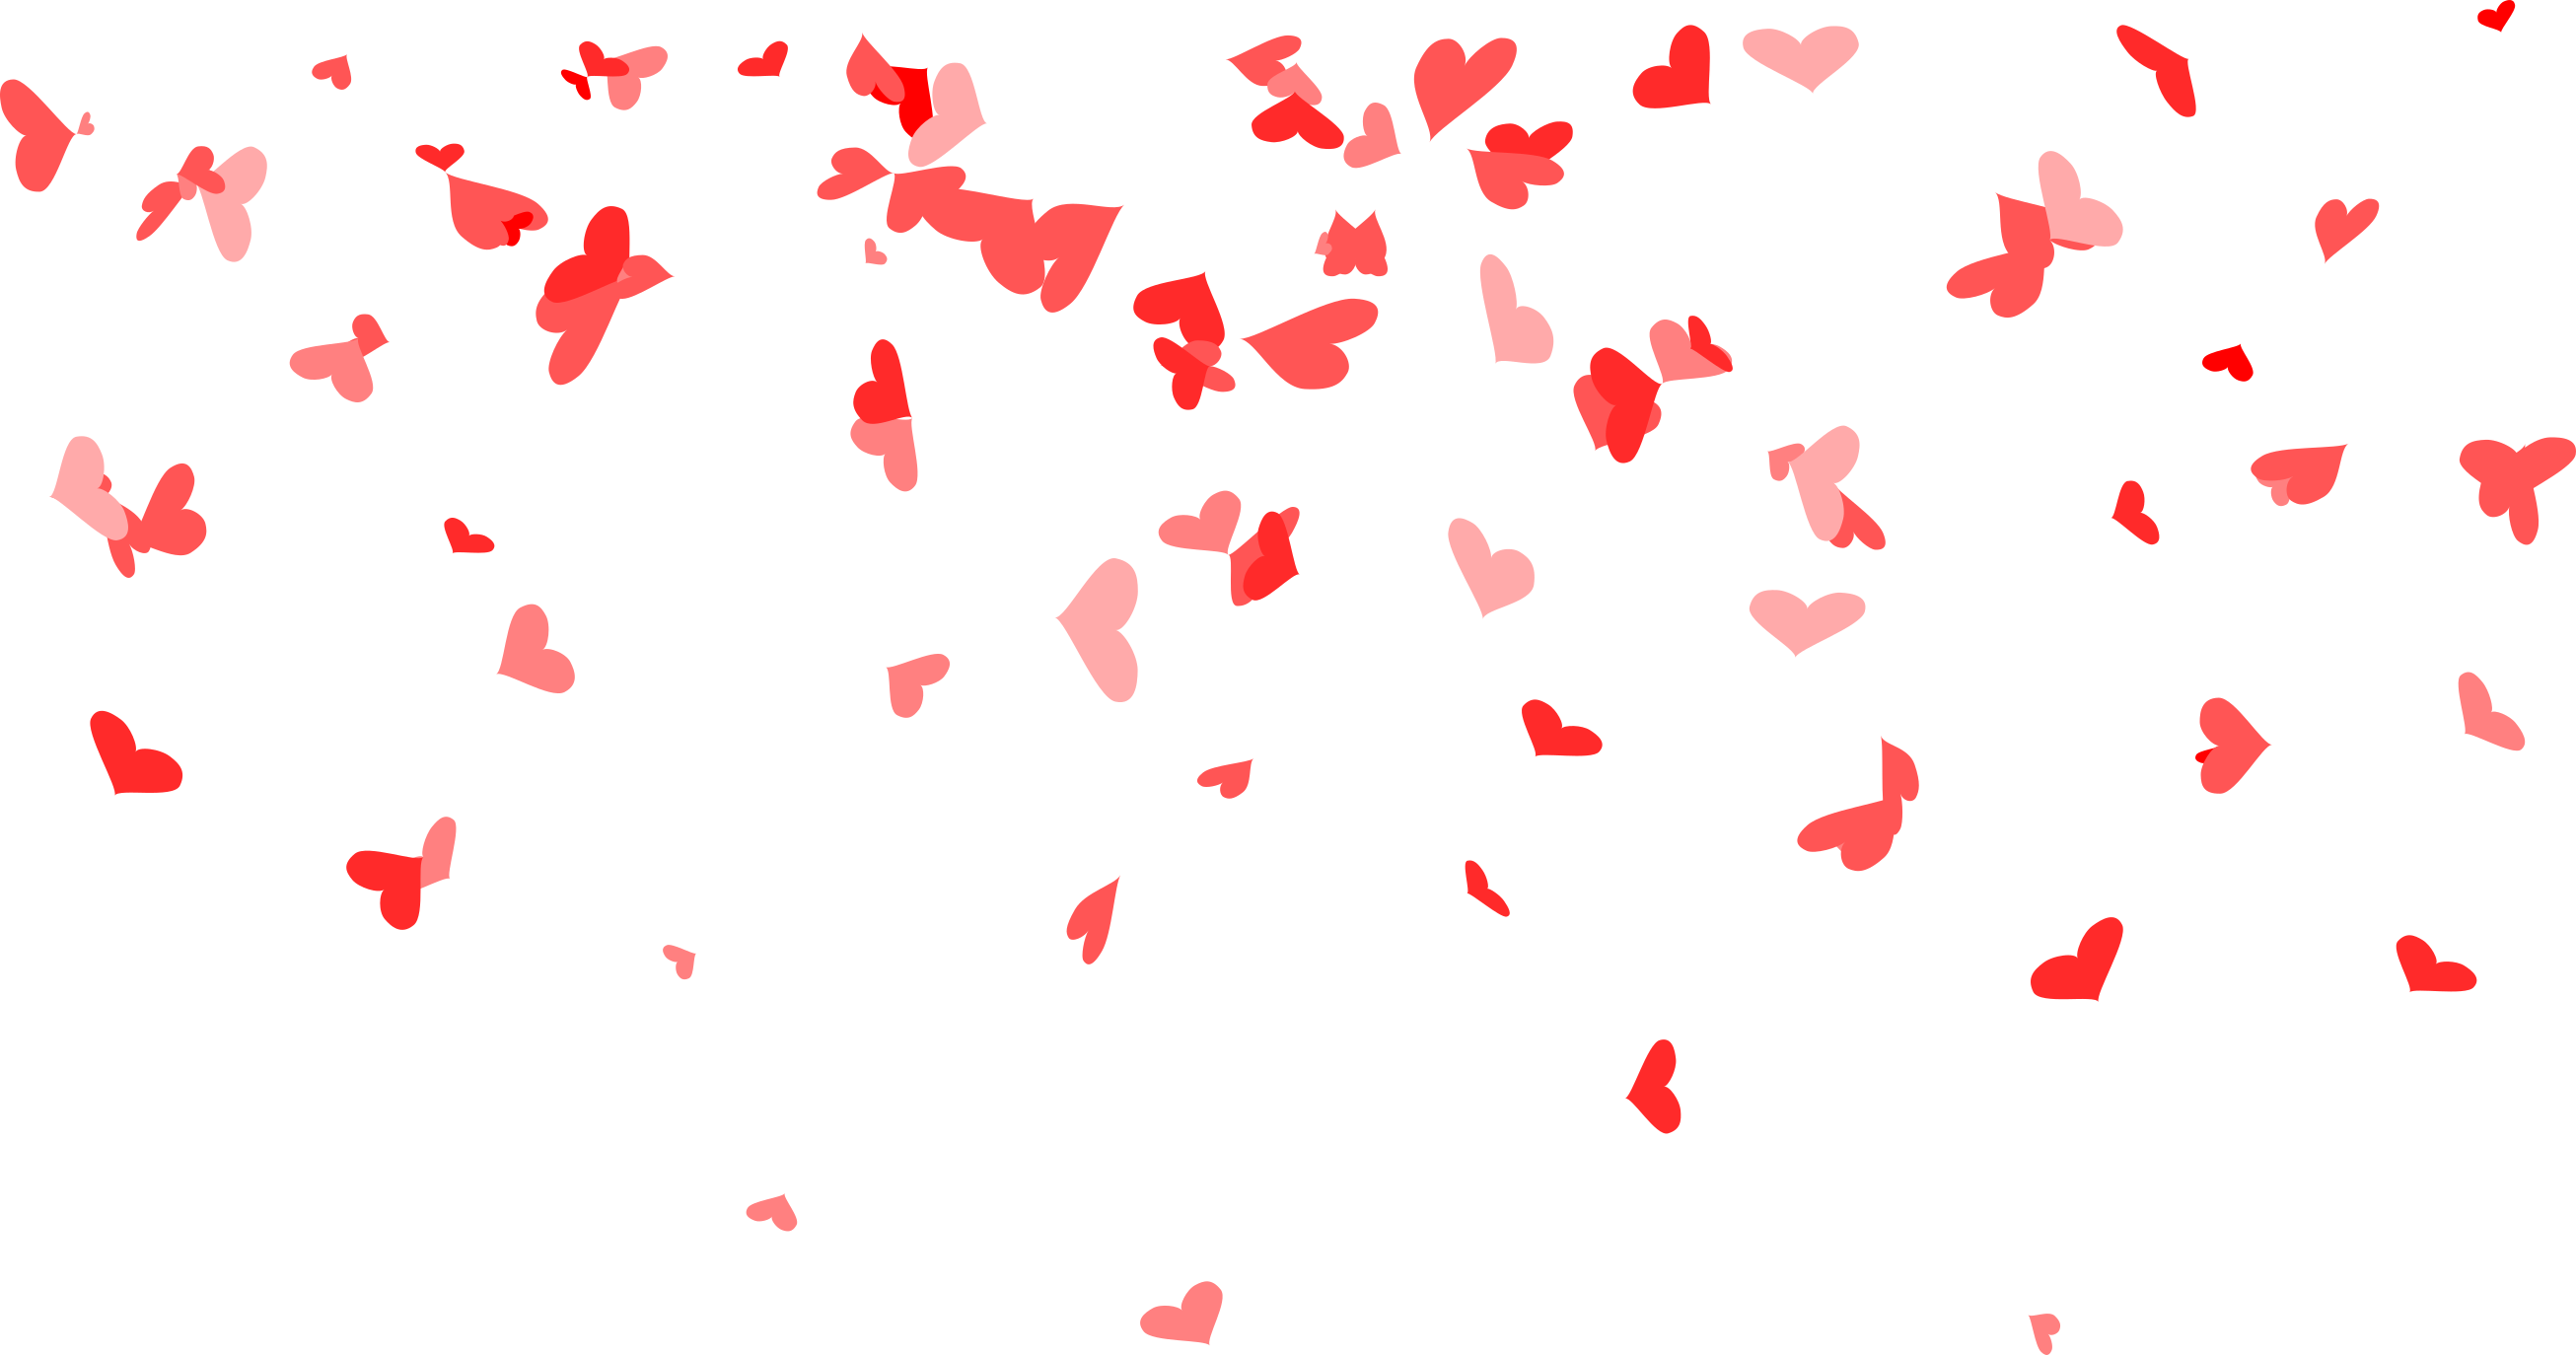 Hearts background png. Heart confetti transparent